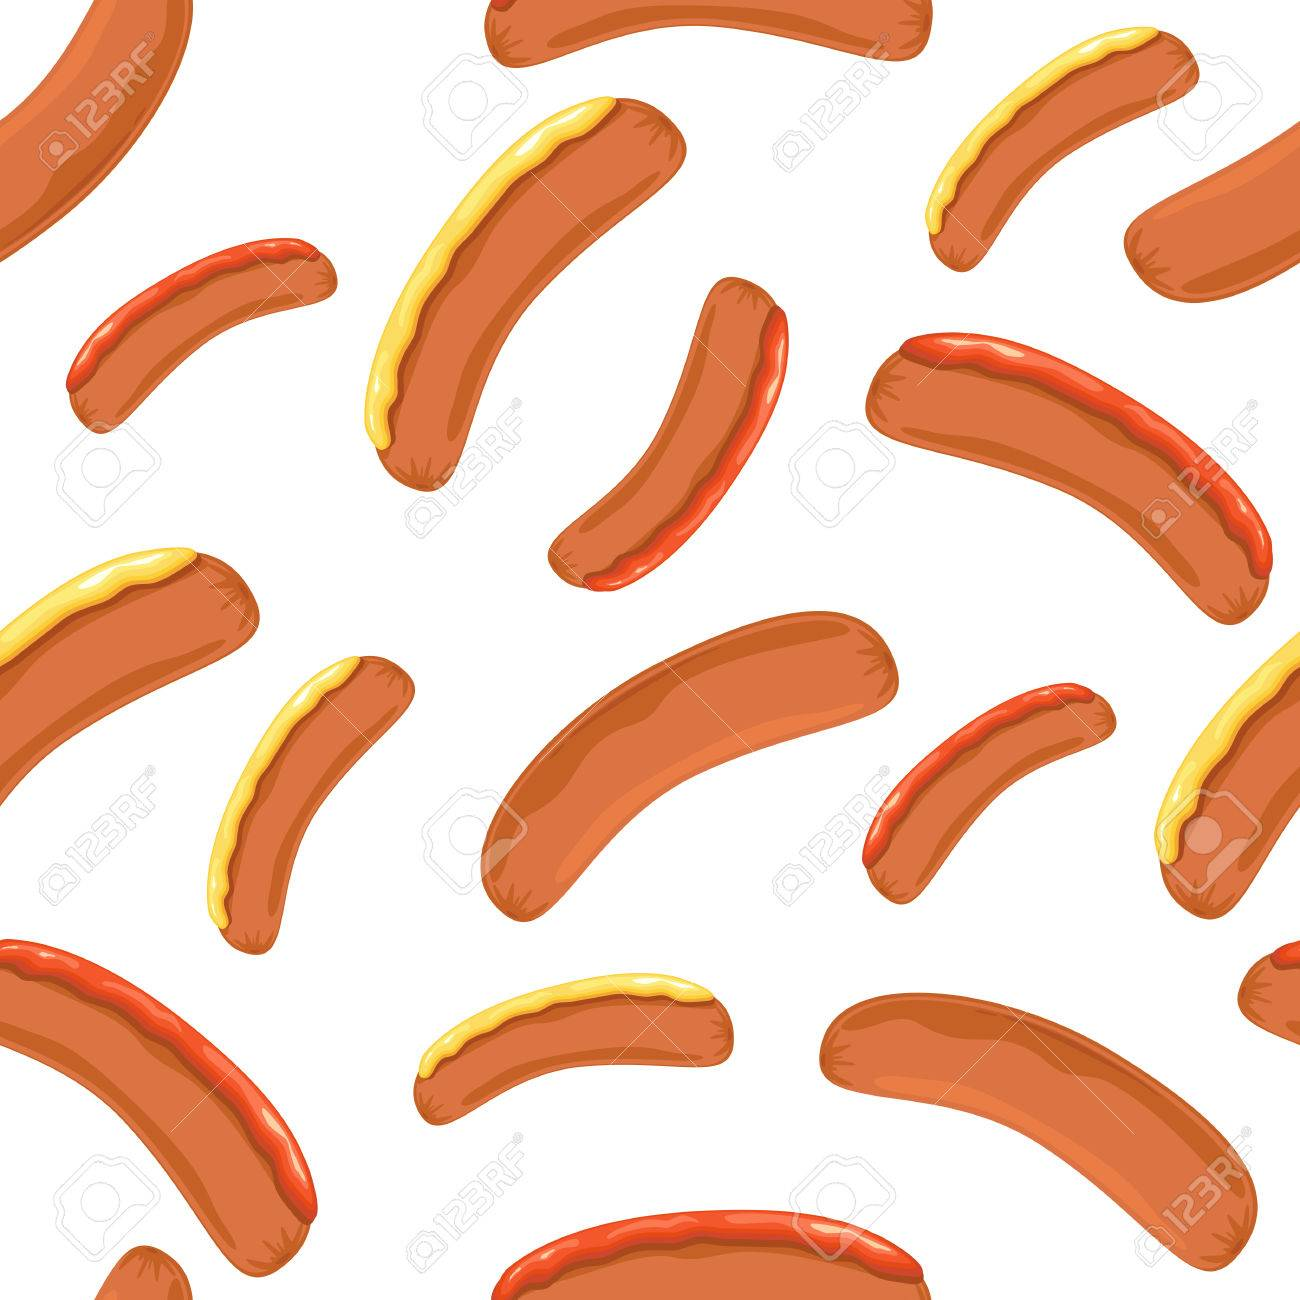 Seamless Wallpaper With Sausages Mustard And Ketchup On White 1300x1300